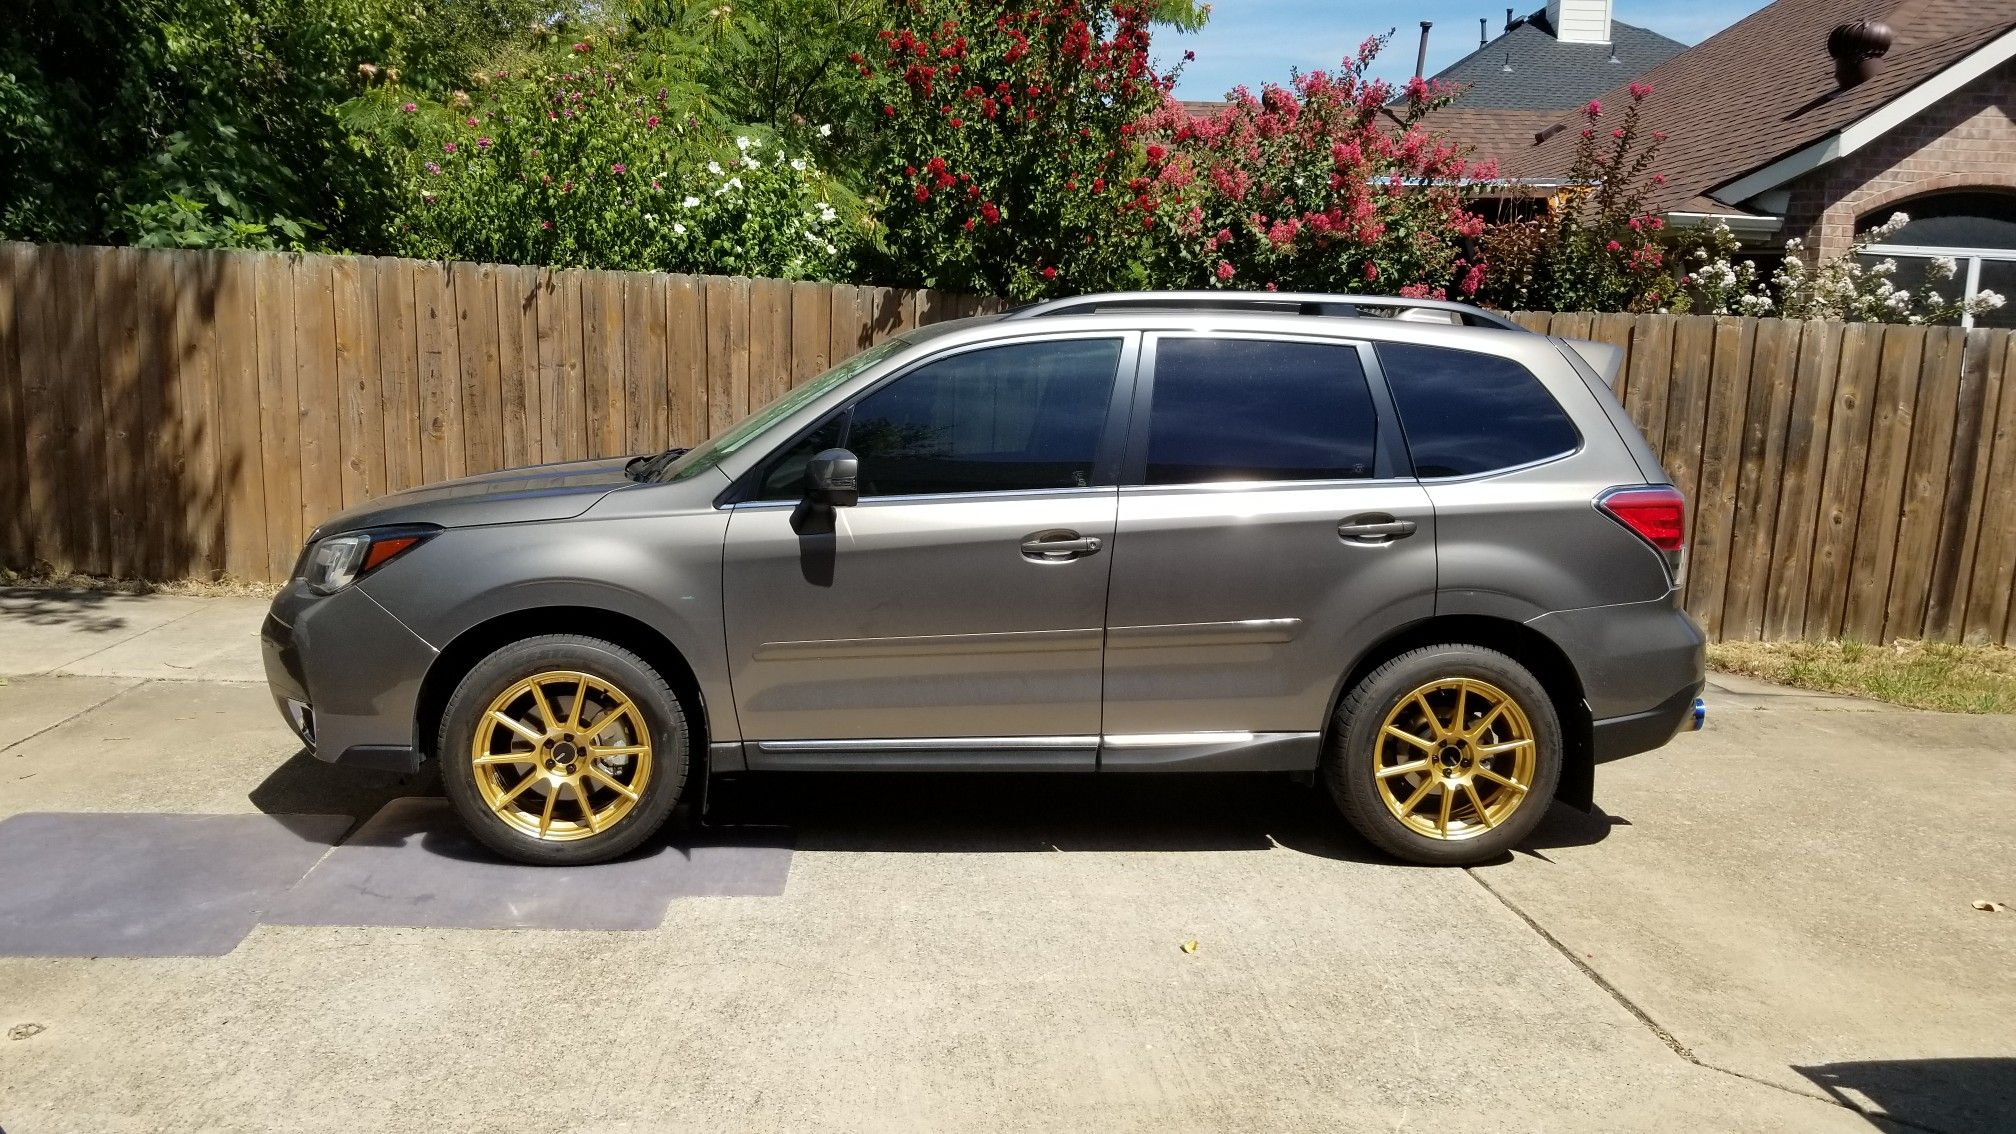 Pin By Ronald Paul On Your Pinterest Likes Subaru Forester Xt Subaru Forester Subaru